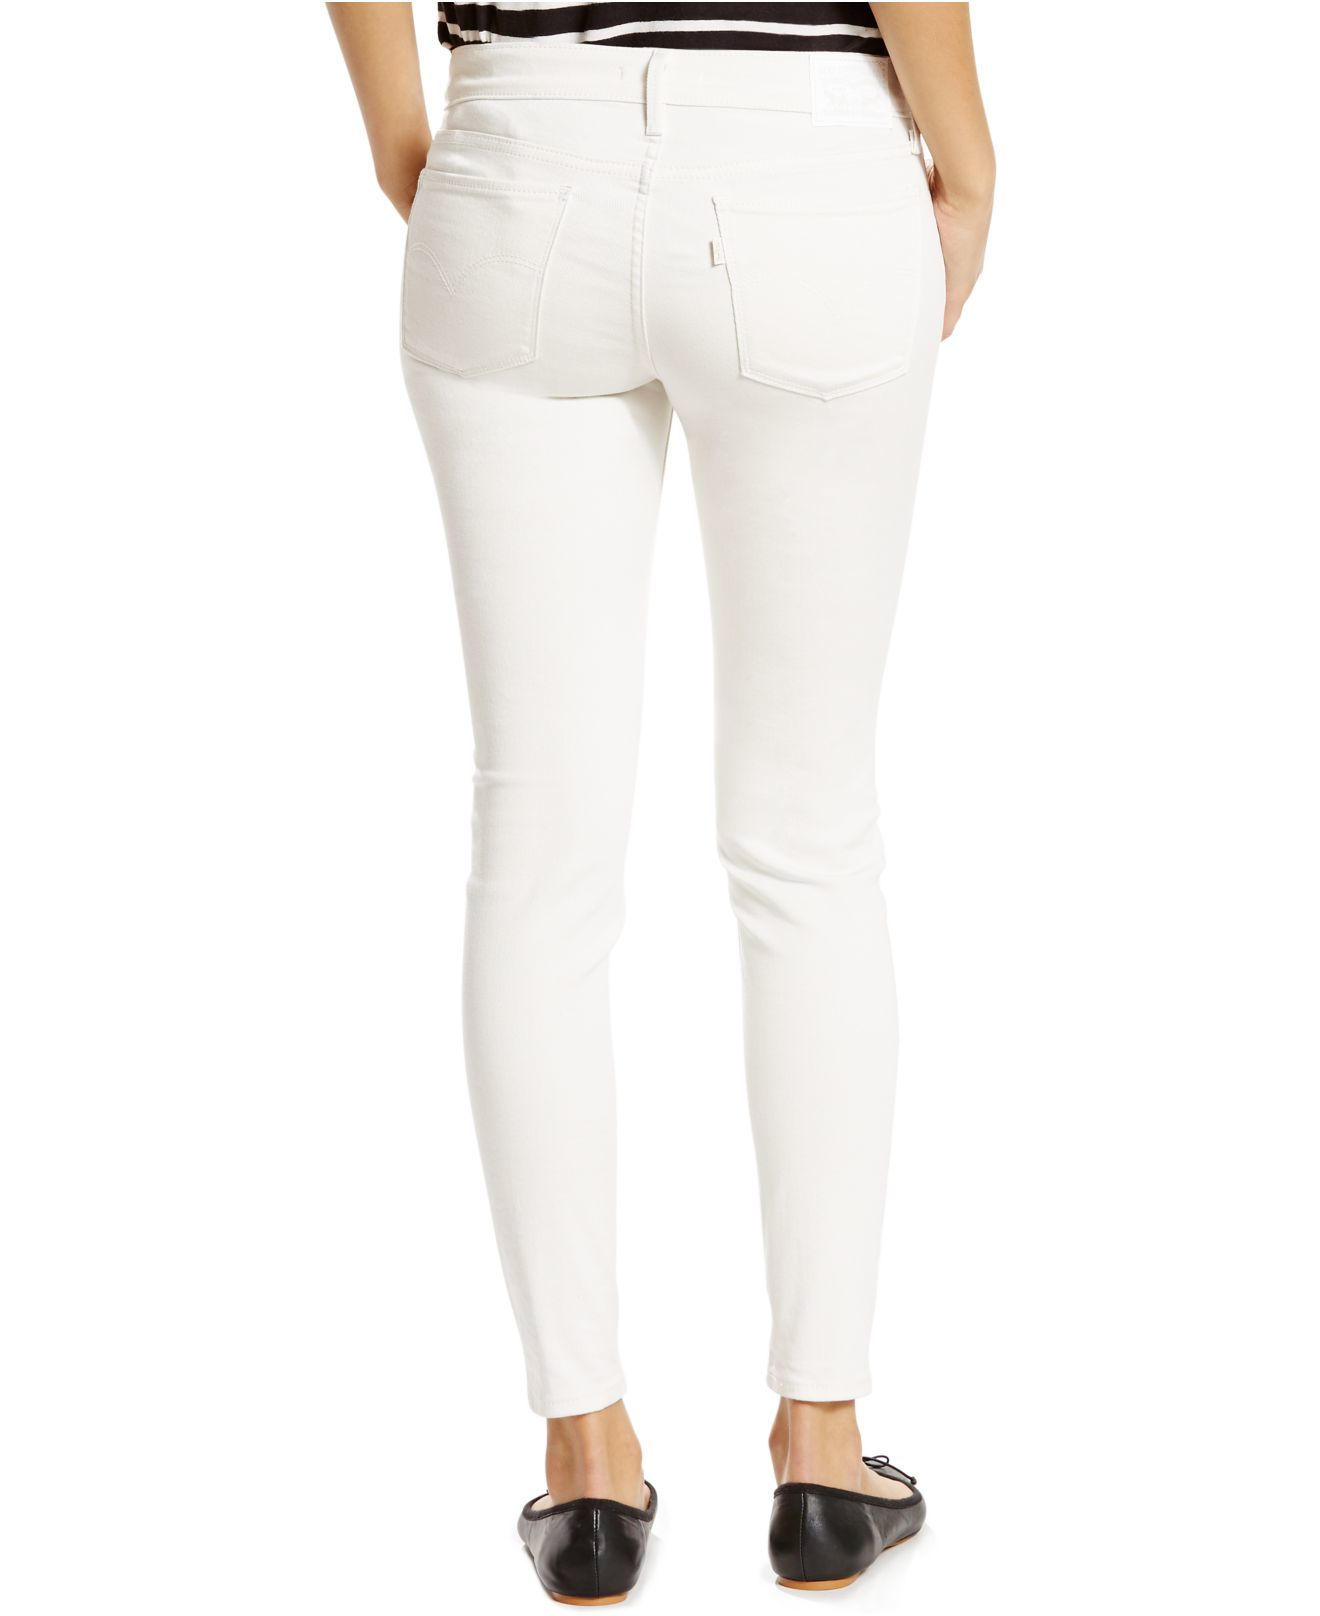 Levi's Women's White Skinny Jeans See more Levi's Skinny jeans. Subscribe to the latest from Levi's. Find on store. We check over stores daily and we last saw this product for $ 88 at Farfetch. Go to Farfetch Try these instead. Levi's High Rise Skinny Jeans $60 $50 (15% off)Price: $